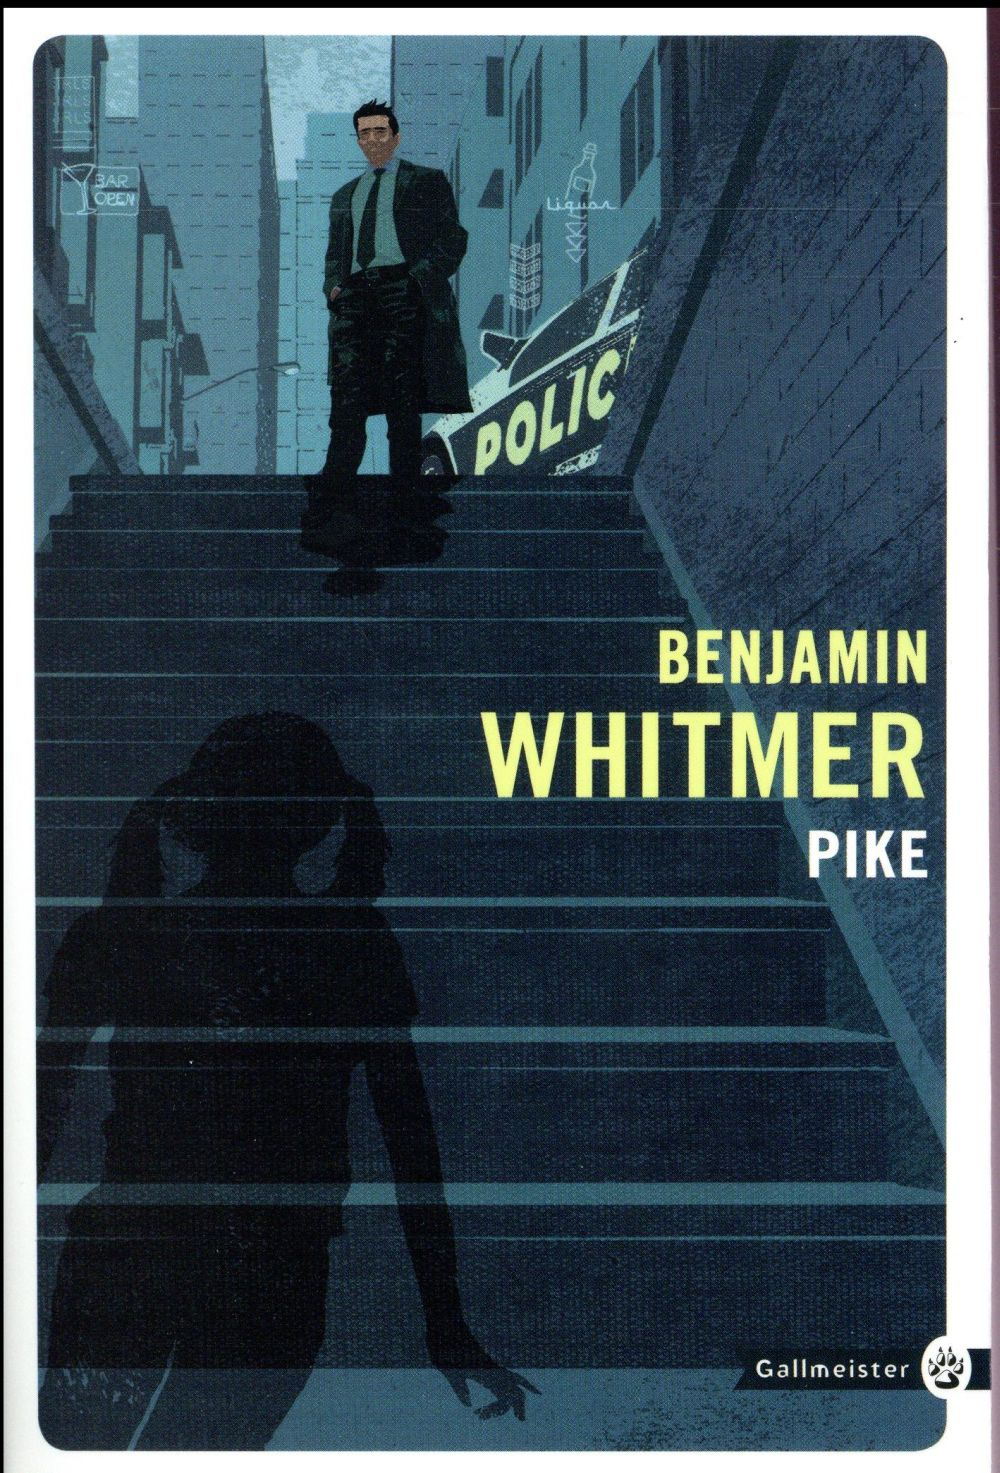 PIKE Whitmer Benjamin Gallmeister